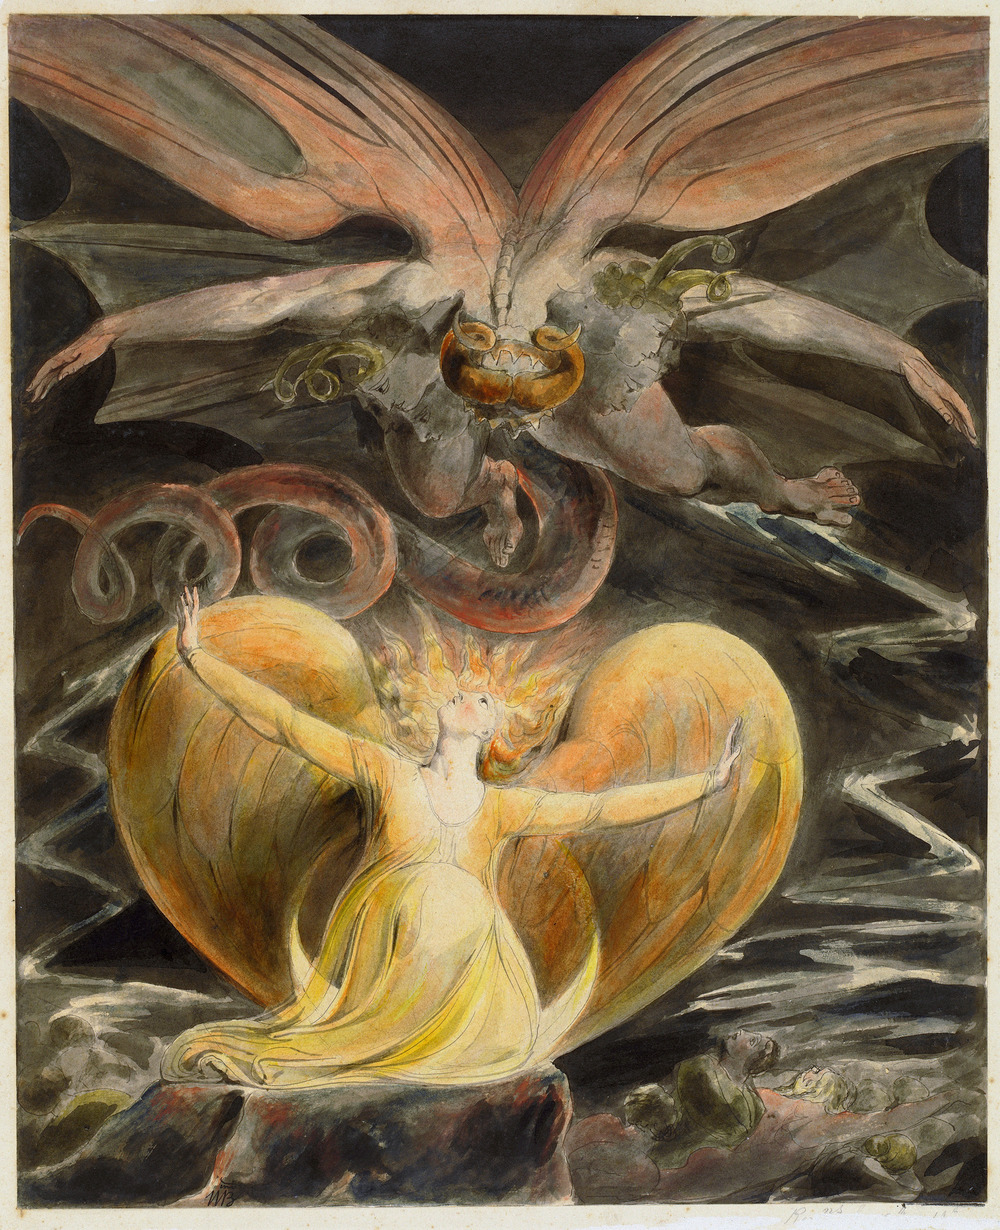 William Blake, The Great Red Dragon and the Woman Clothed with Sun, 1805, National Gallery of Art, Washington DC.